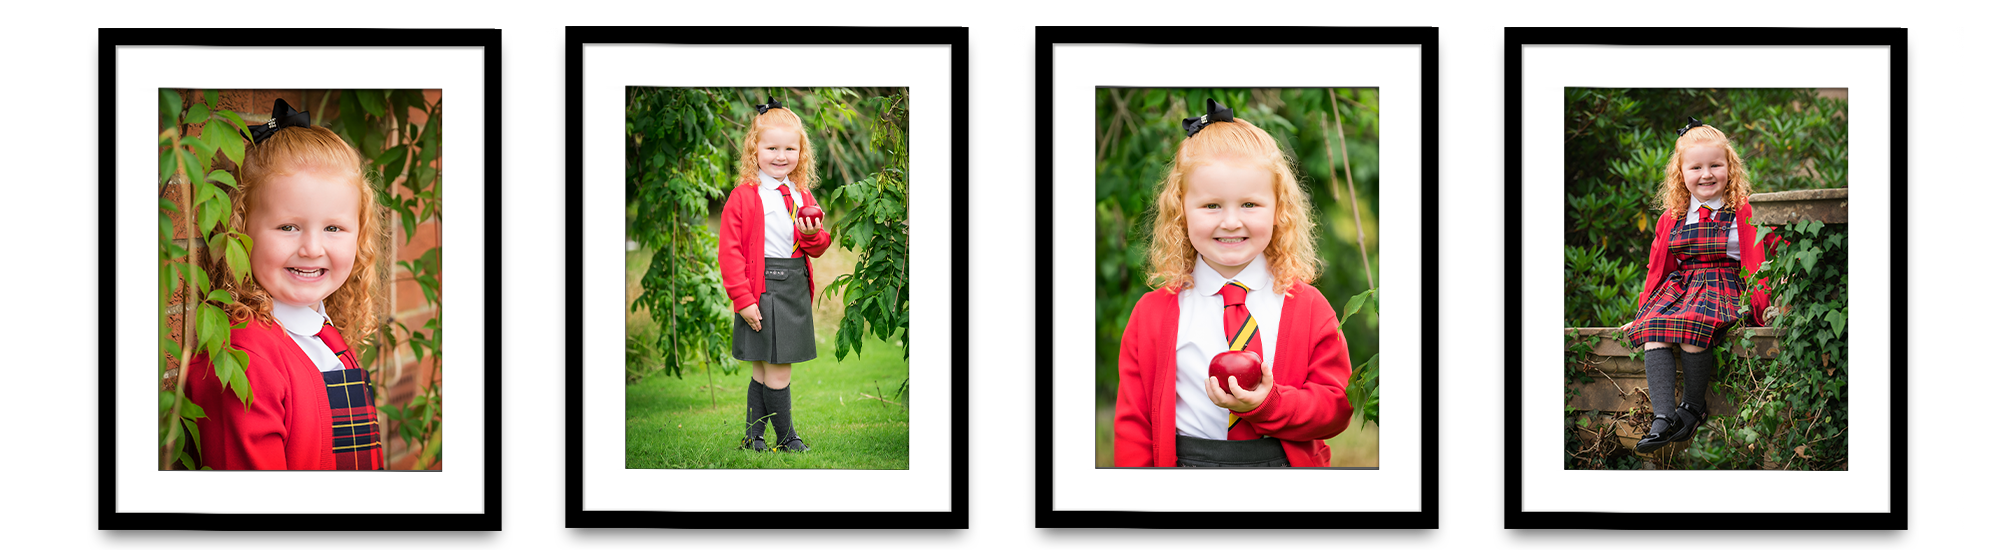 framed P1 back to school photos Hermitage Primary School Helensburgh Life in Focus Portraits school photographer Argyll and Bute